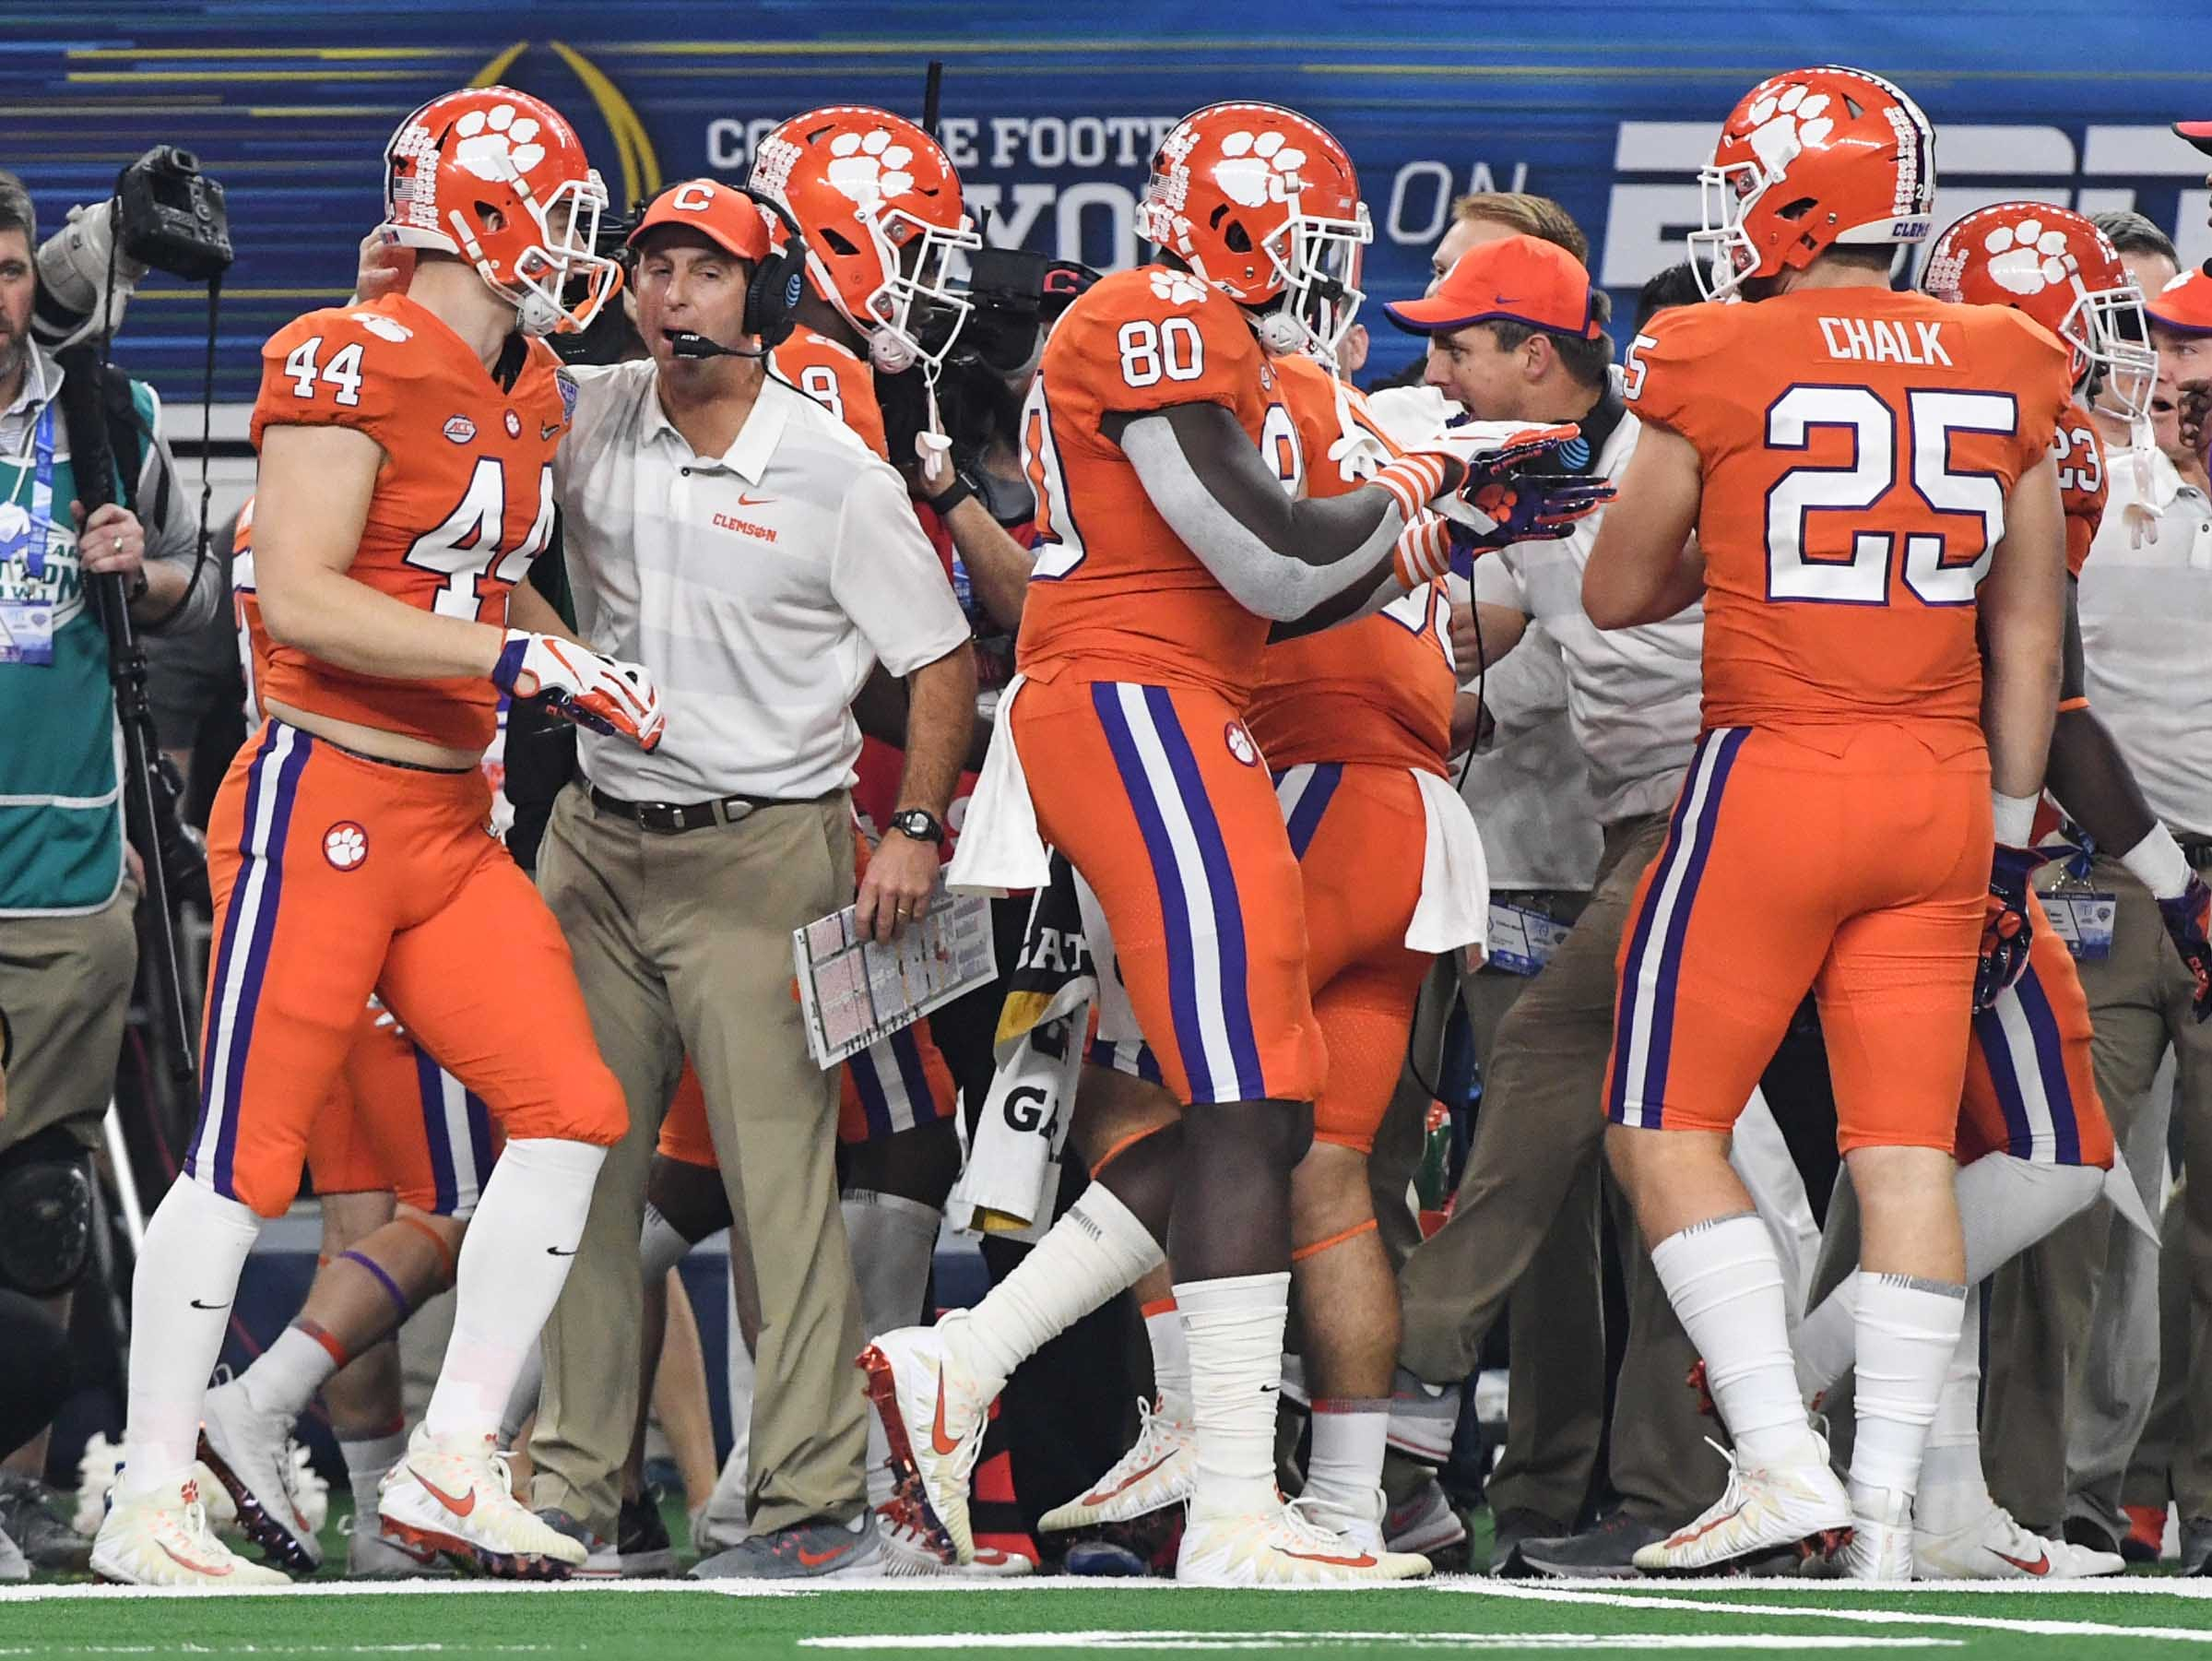 Clemson Head Coach Dabo Swinney watches tight end Garrett Williams (44) and tight end Milan Richard (80) come in after a play during the second quarter of the College Football Playoff Semifinal at the Goodyear Cotton Bowl Classic at AT&T Stadium in Arlington, Texas Saturday, December 29, 2018.